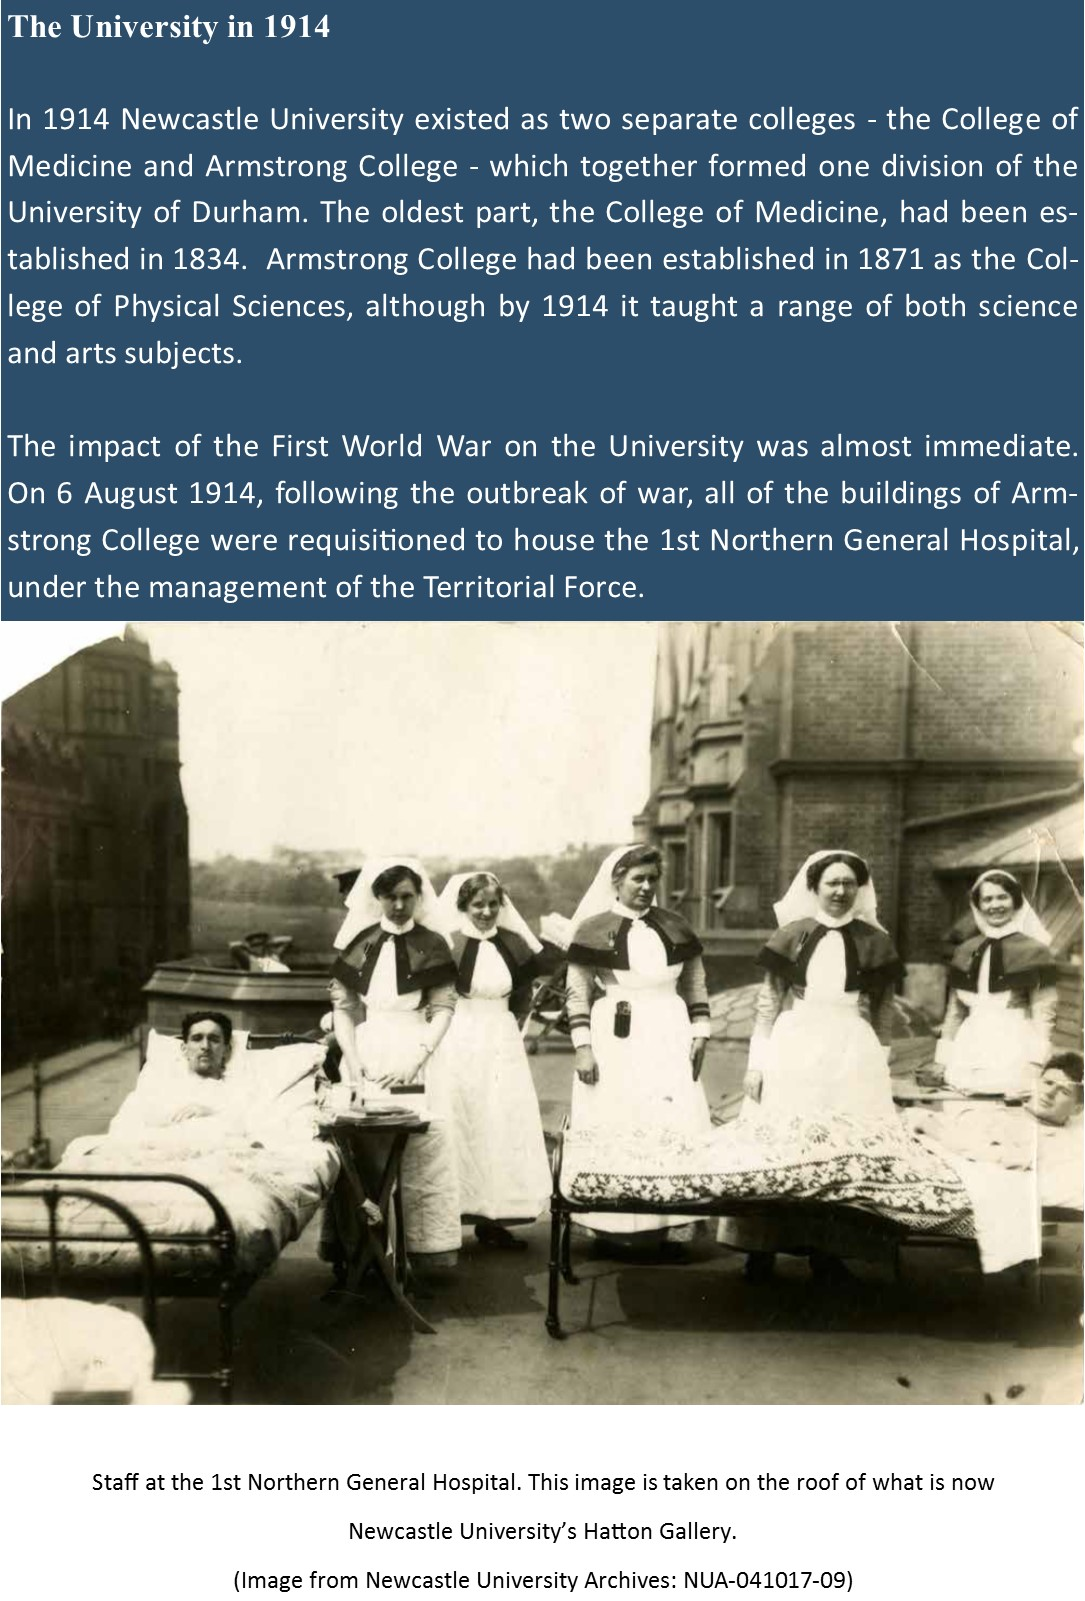 A University at War – Newcastle University during WWI